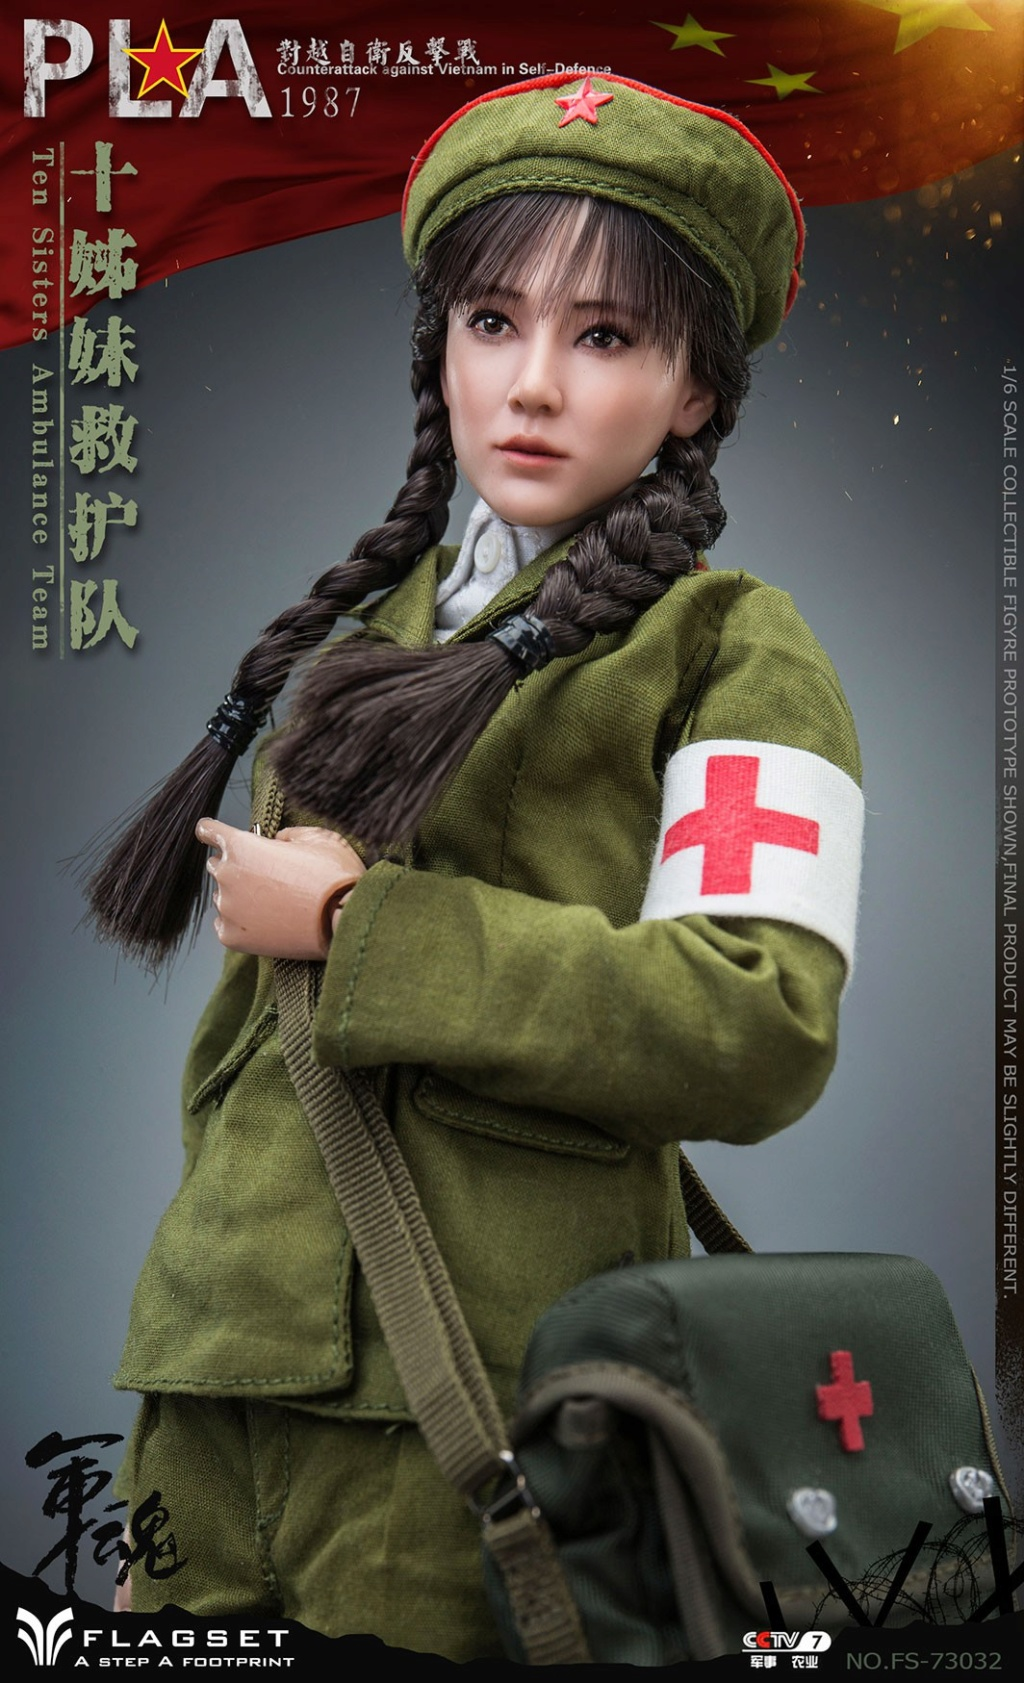 CounterAttack - NEW PRODUCT: Flagset: 1/6 counterattack against Vietnam-female soldiers of the ten sisters rescue team of the Chinese People's Liberation Army (FS73032#) 06541010